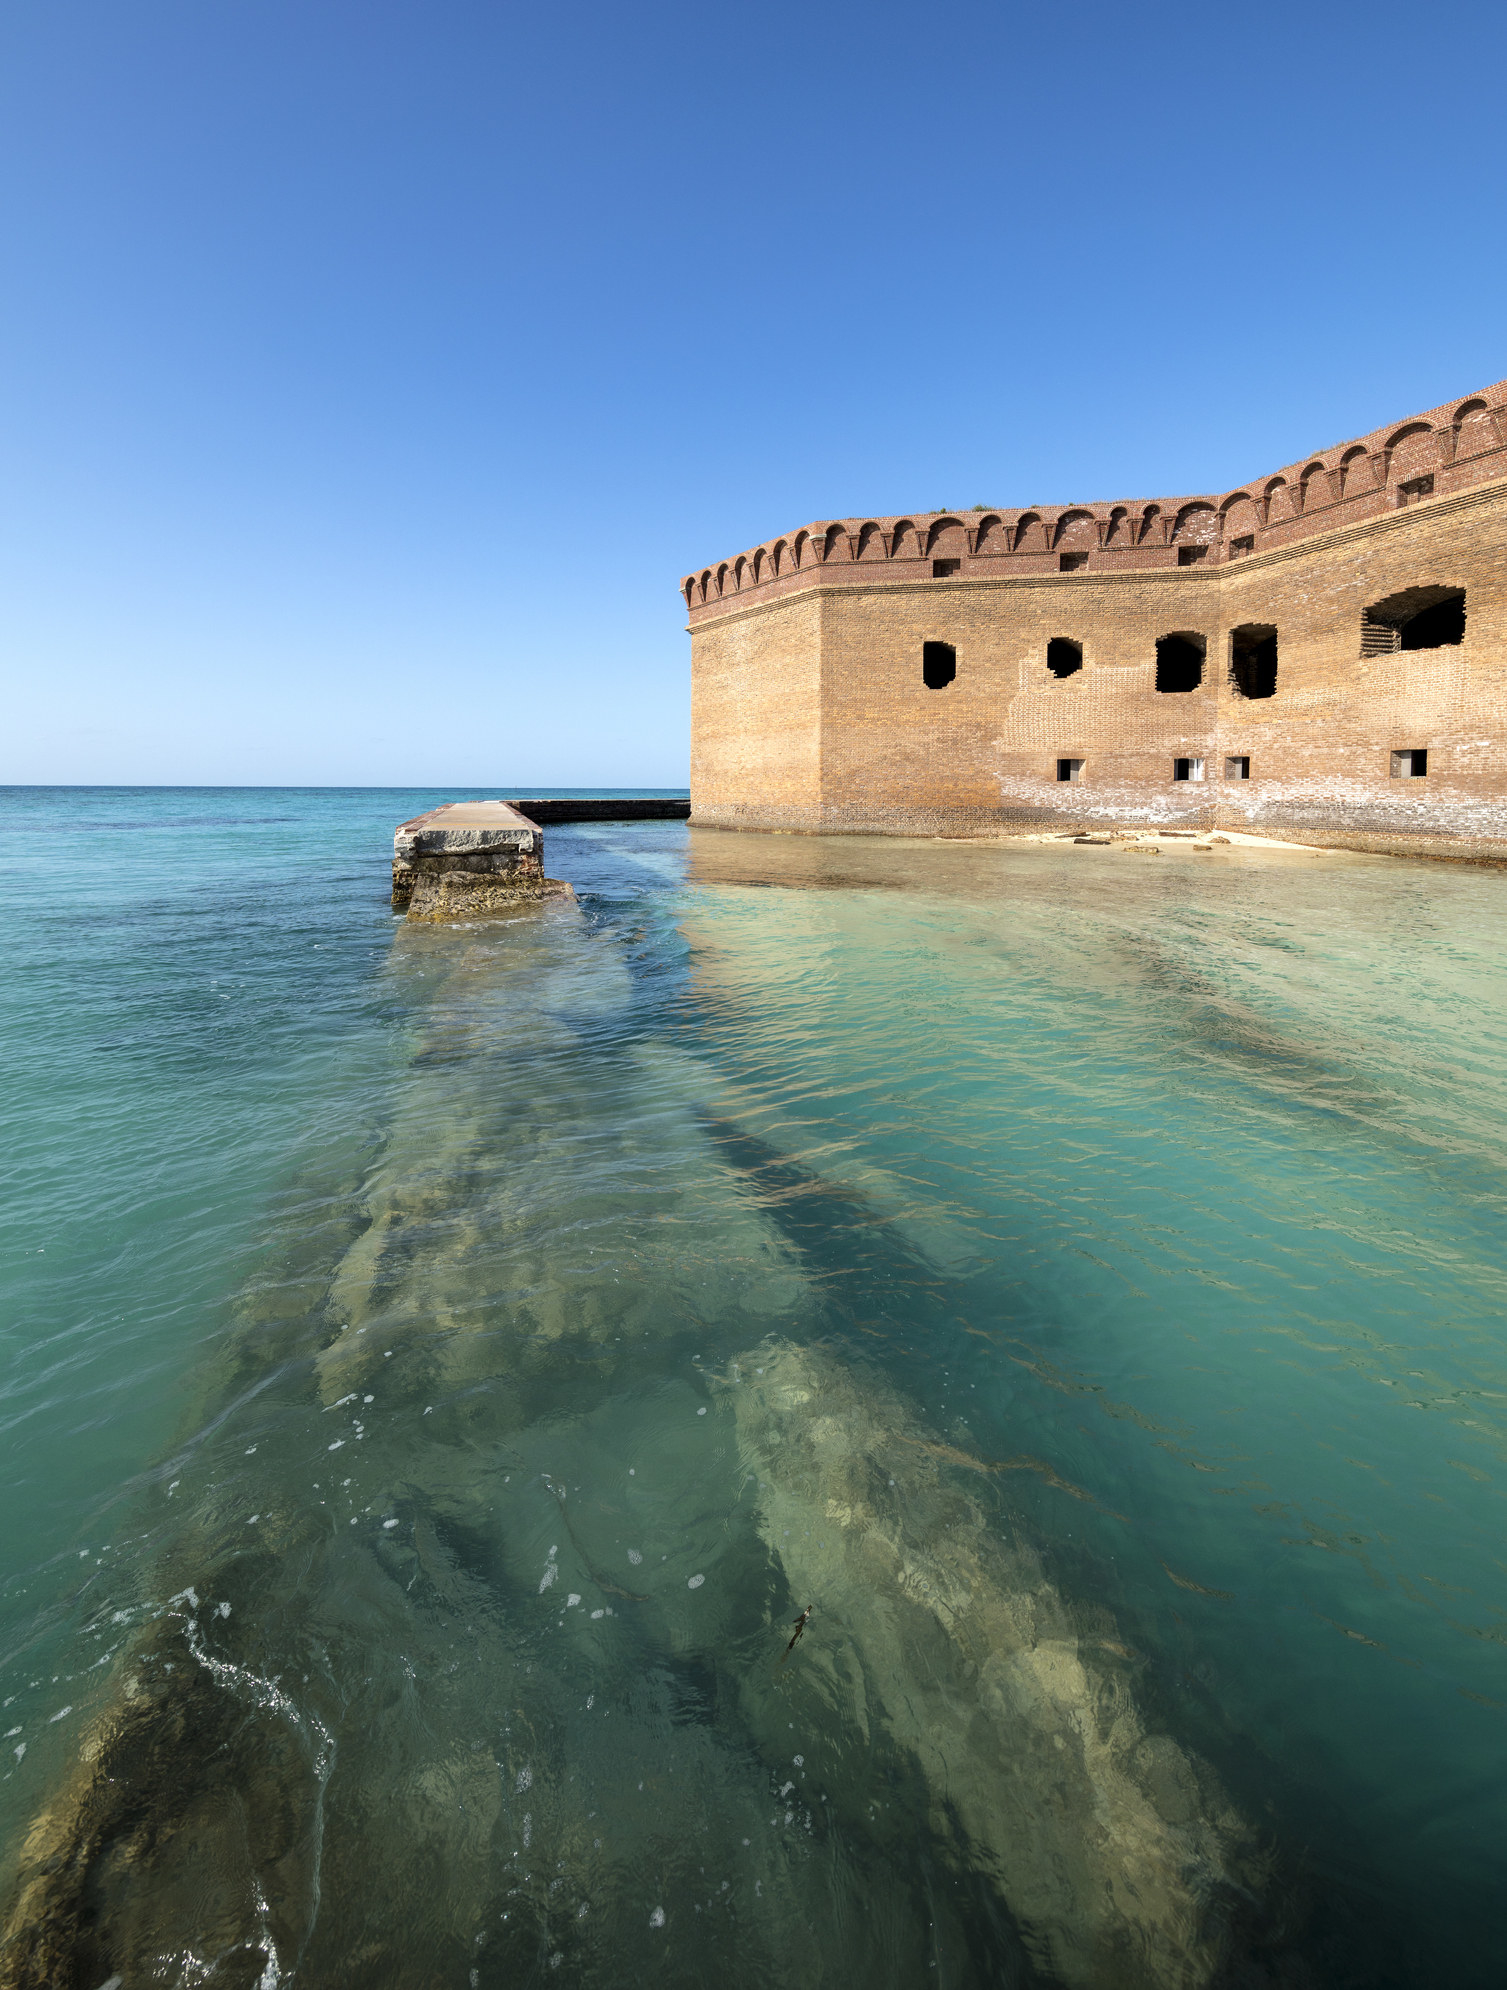 A view of Fort Jefferson and a moat surrounded by clear blue water at Dry Tortugas National Park.